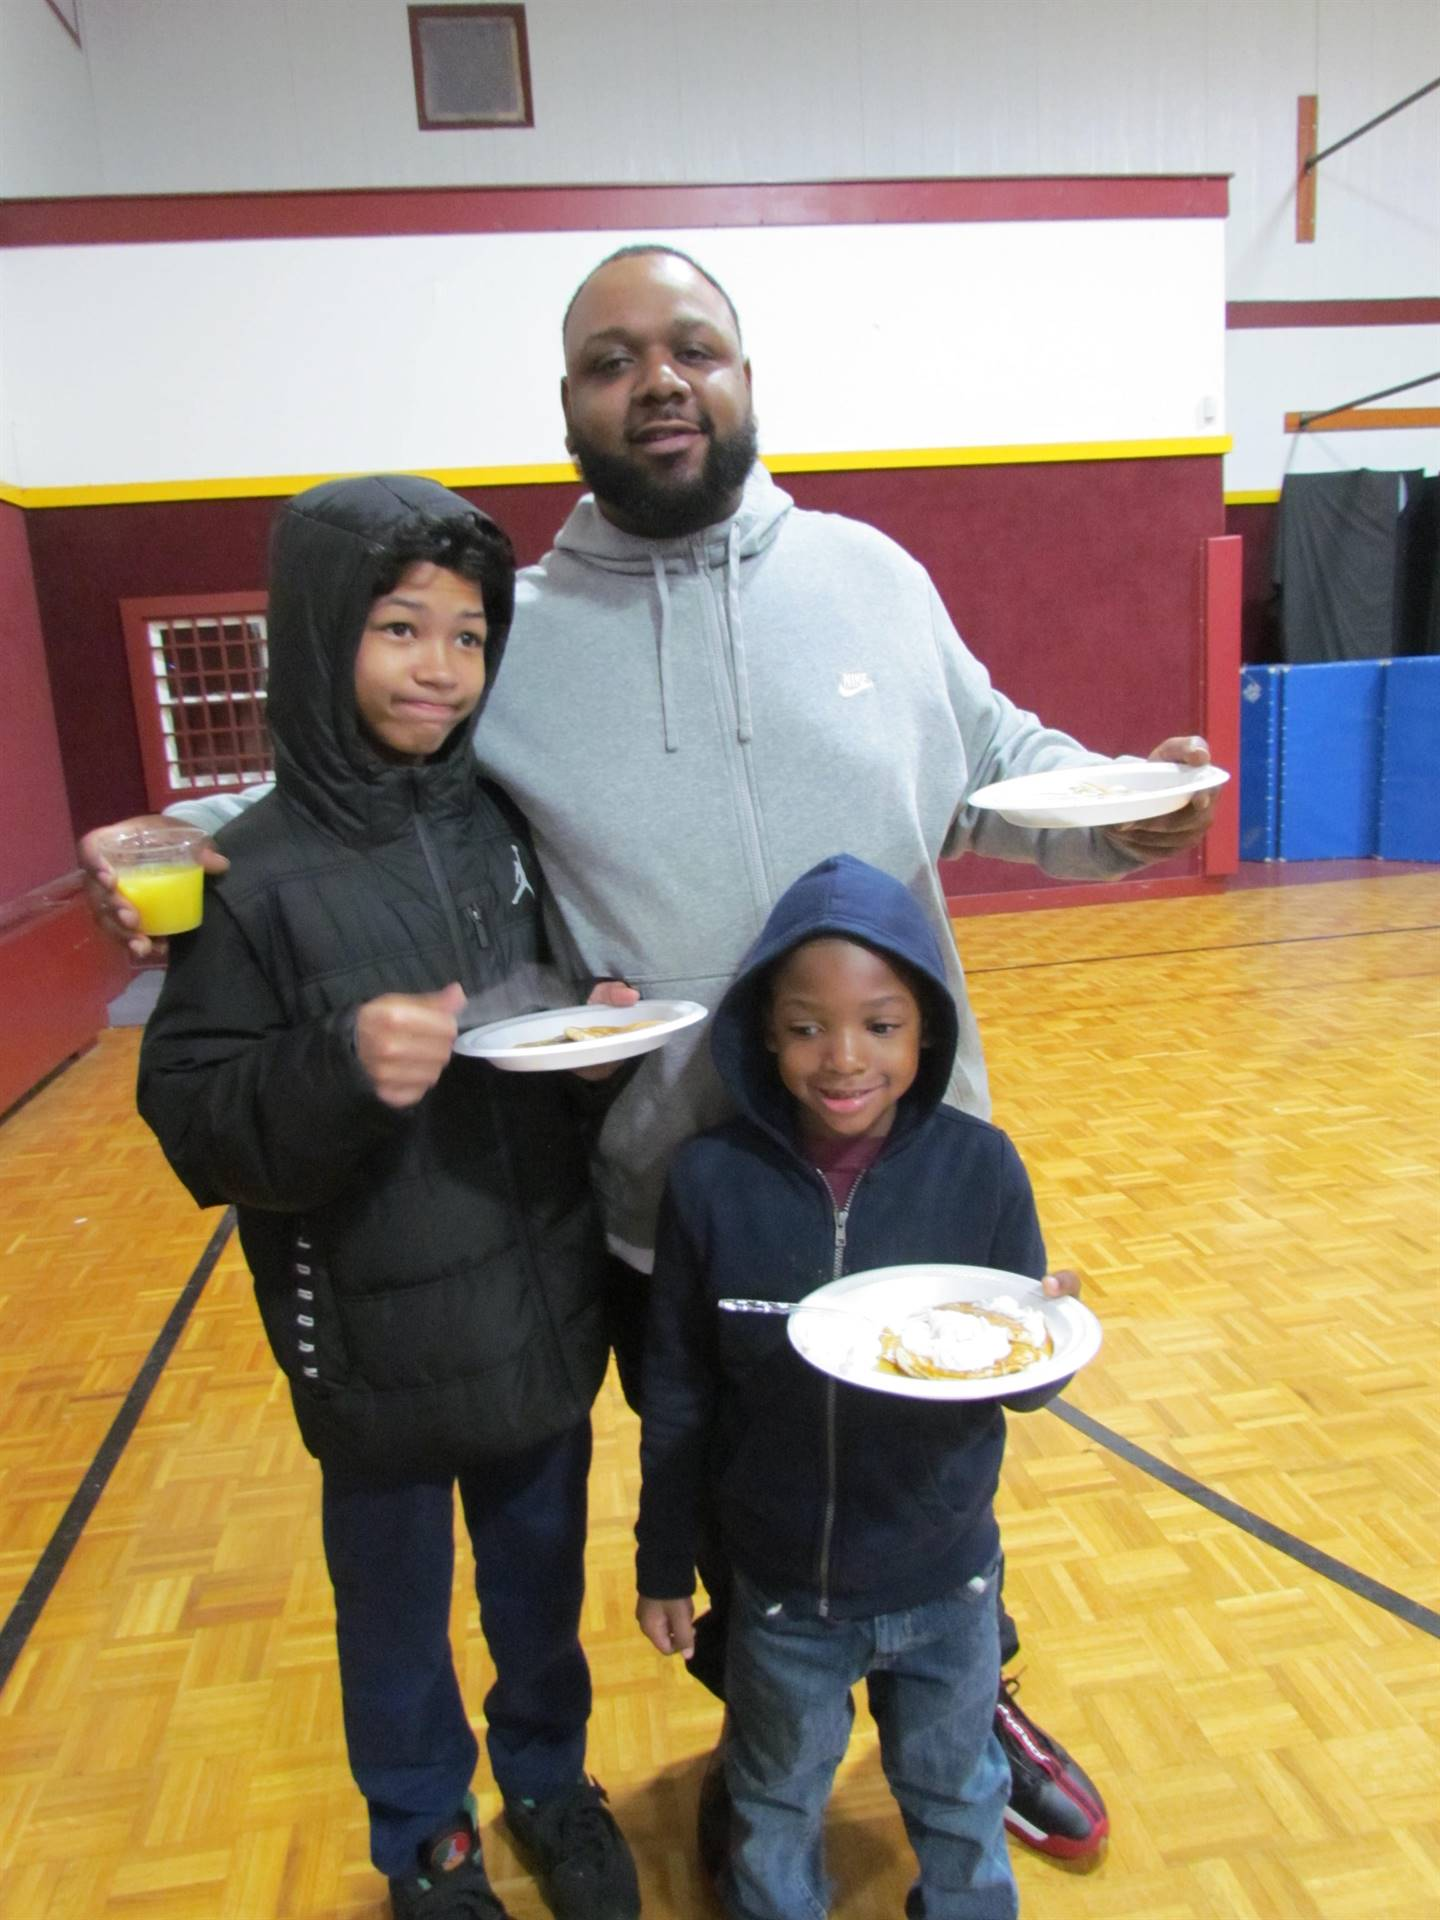 dad with 2 kids and pancakes